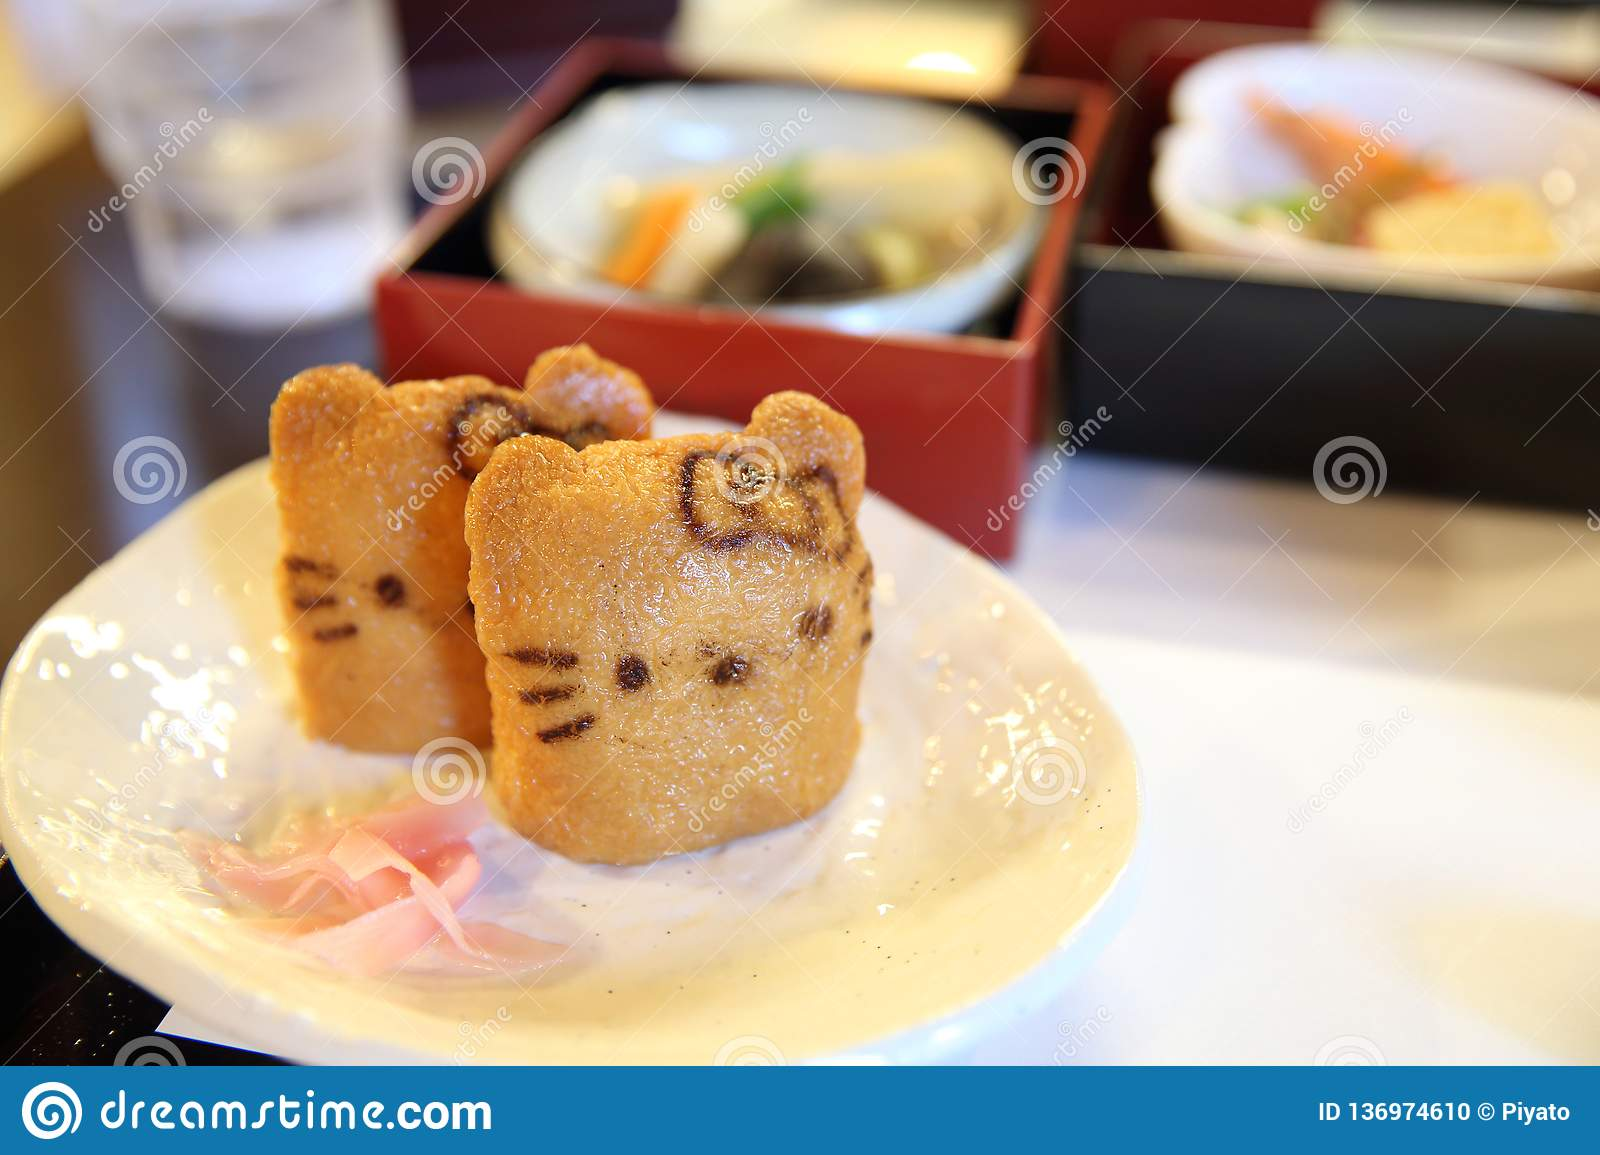 Japanese Sushi Inari Sushi, Fried Bean-curd Stuffed With